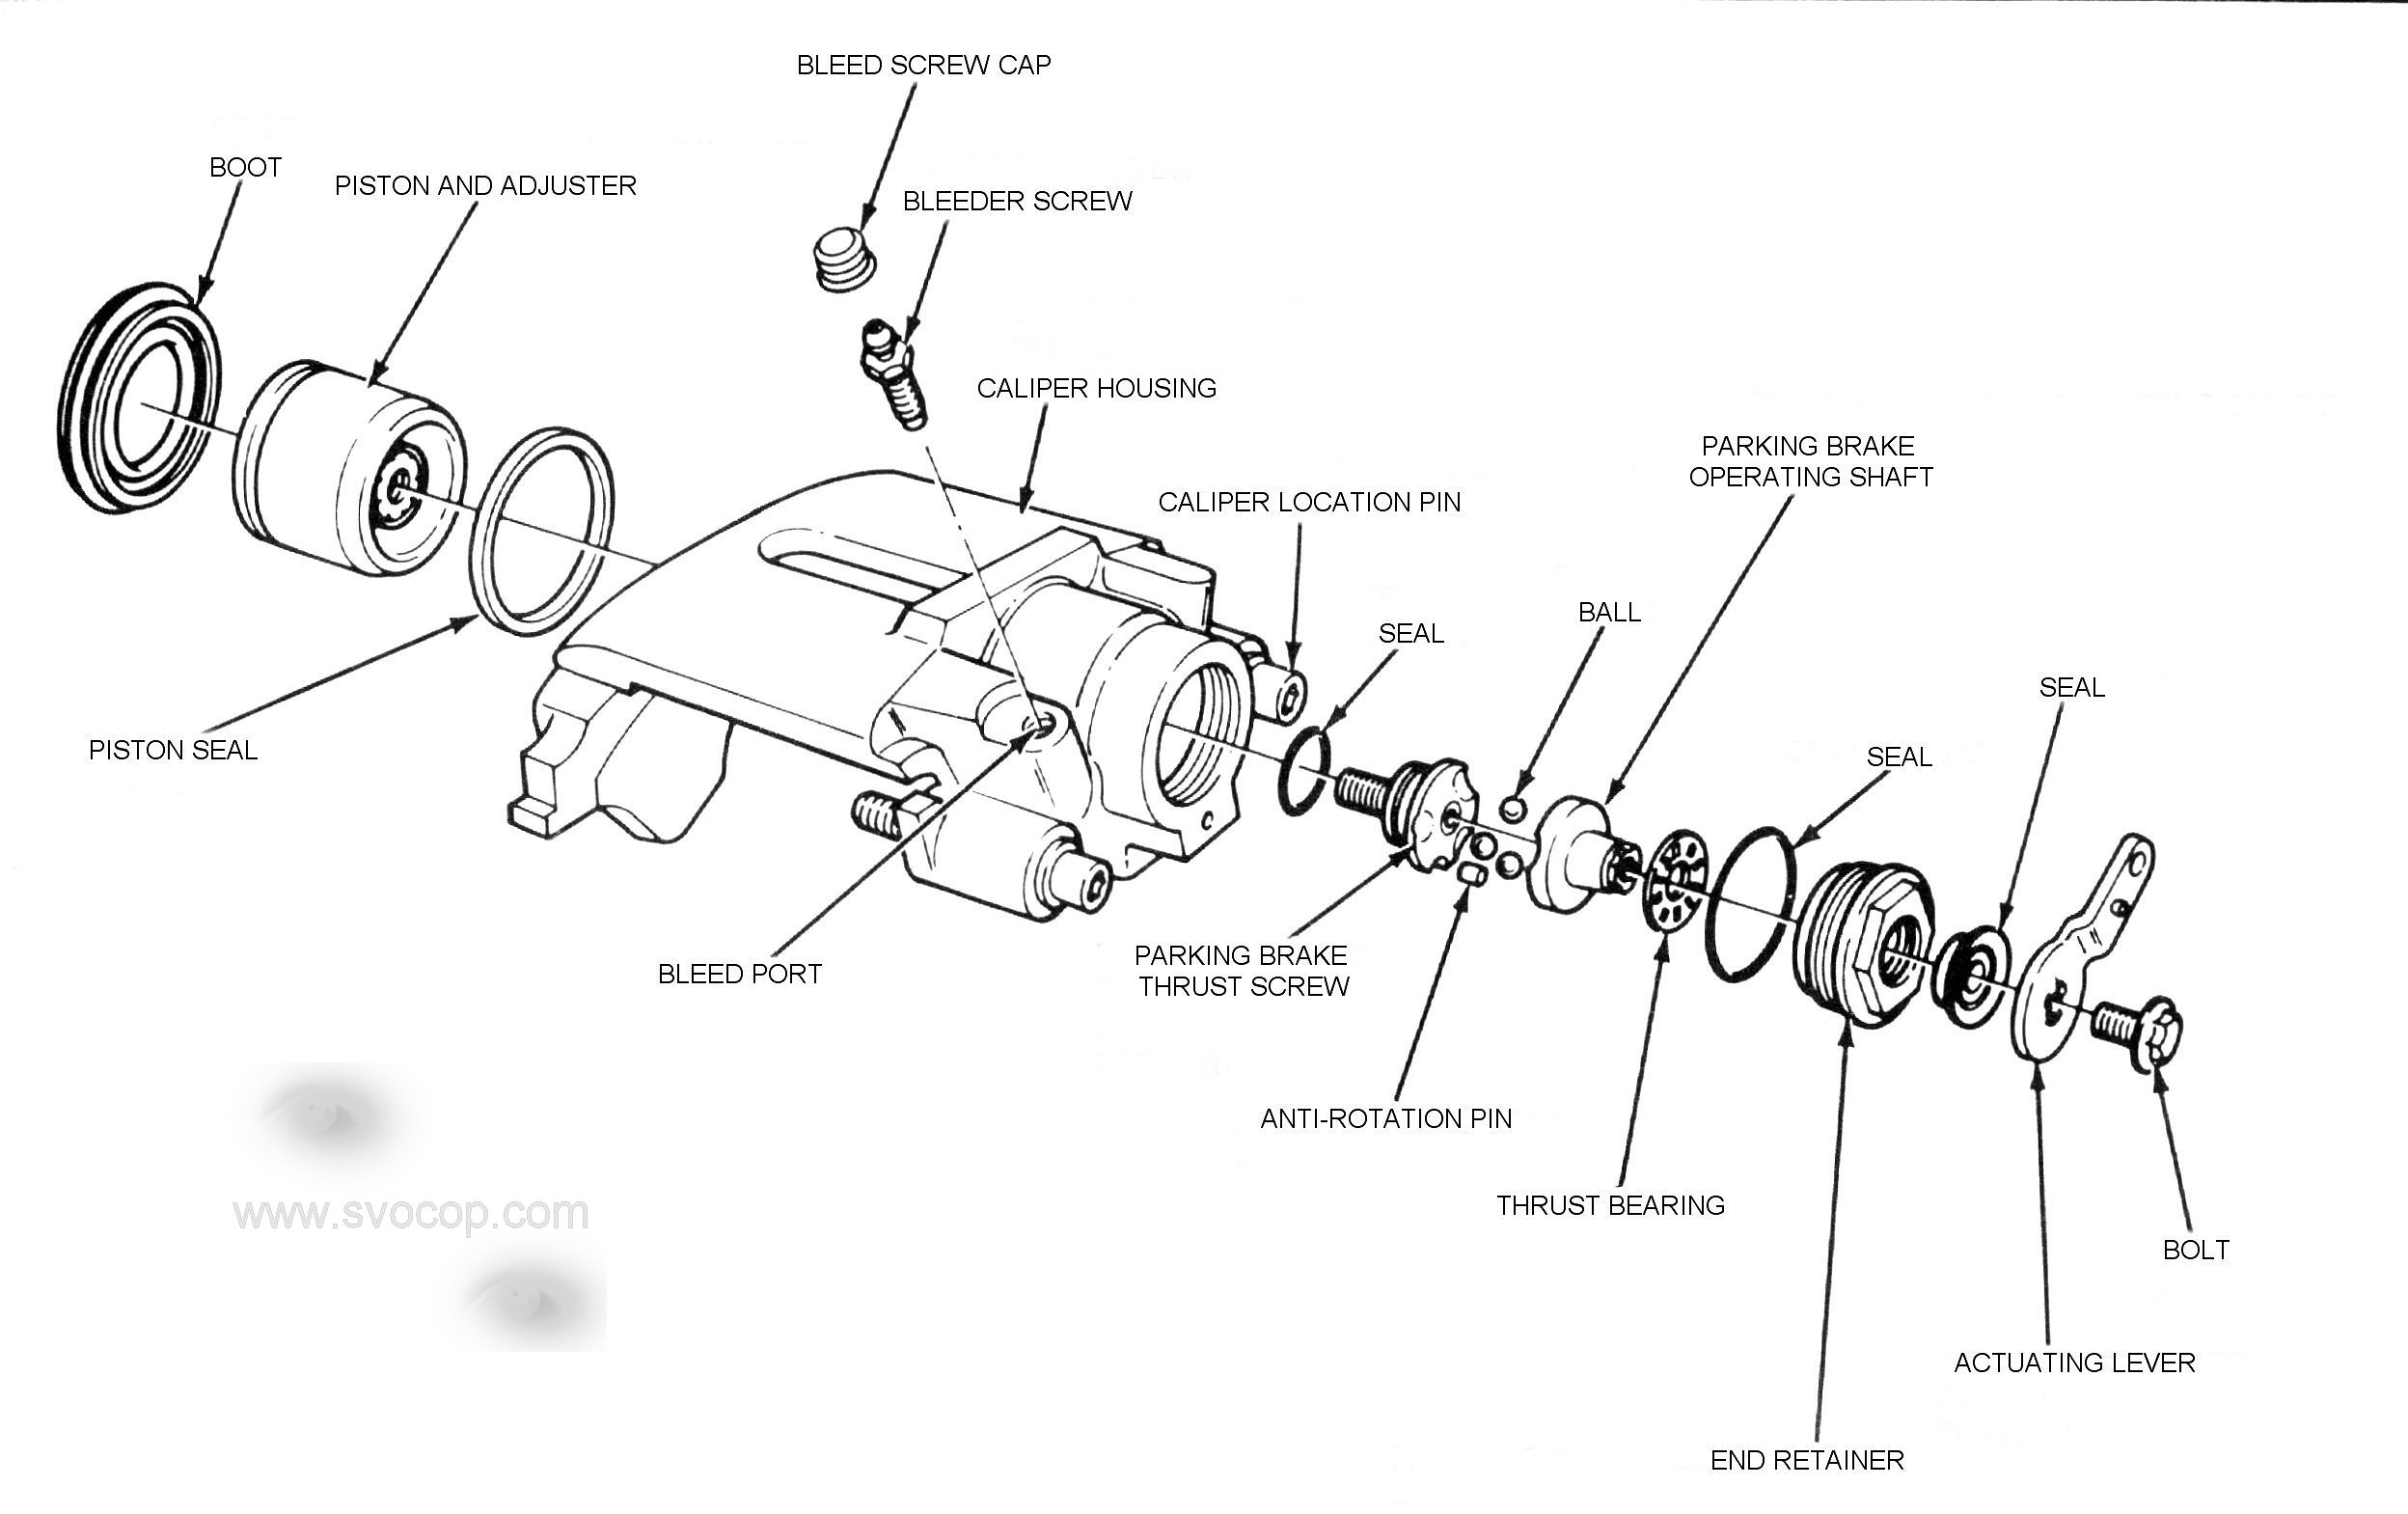 2001 Oldsmobile Intrigue Engine Diagram likewise Ford Five Hundred Rear Parts Diagram besides 1997 Buick Lesabre Parts Diagram as well Watch moreover Cadillac Srx Parts Diagram Drive Shaft. on oldsmobile bravada parts diagram